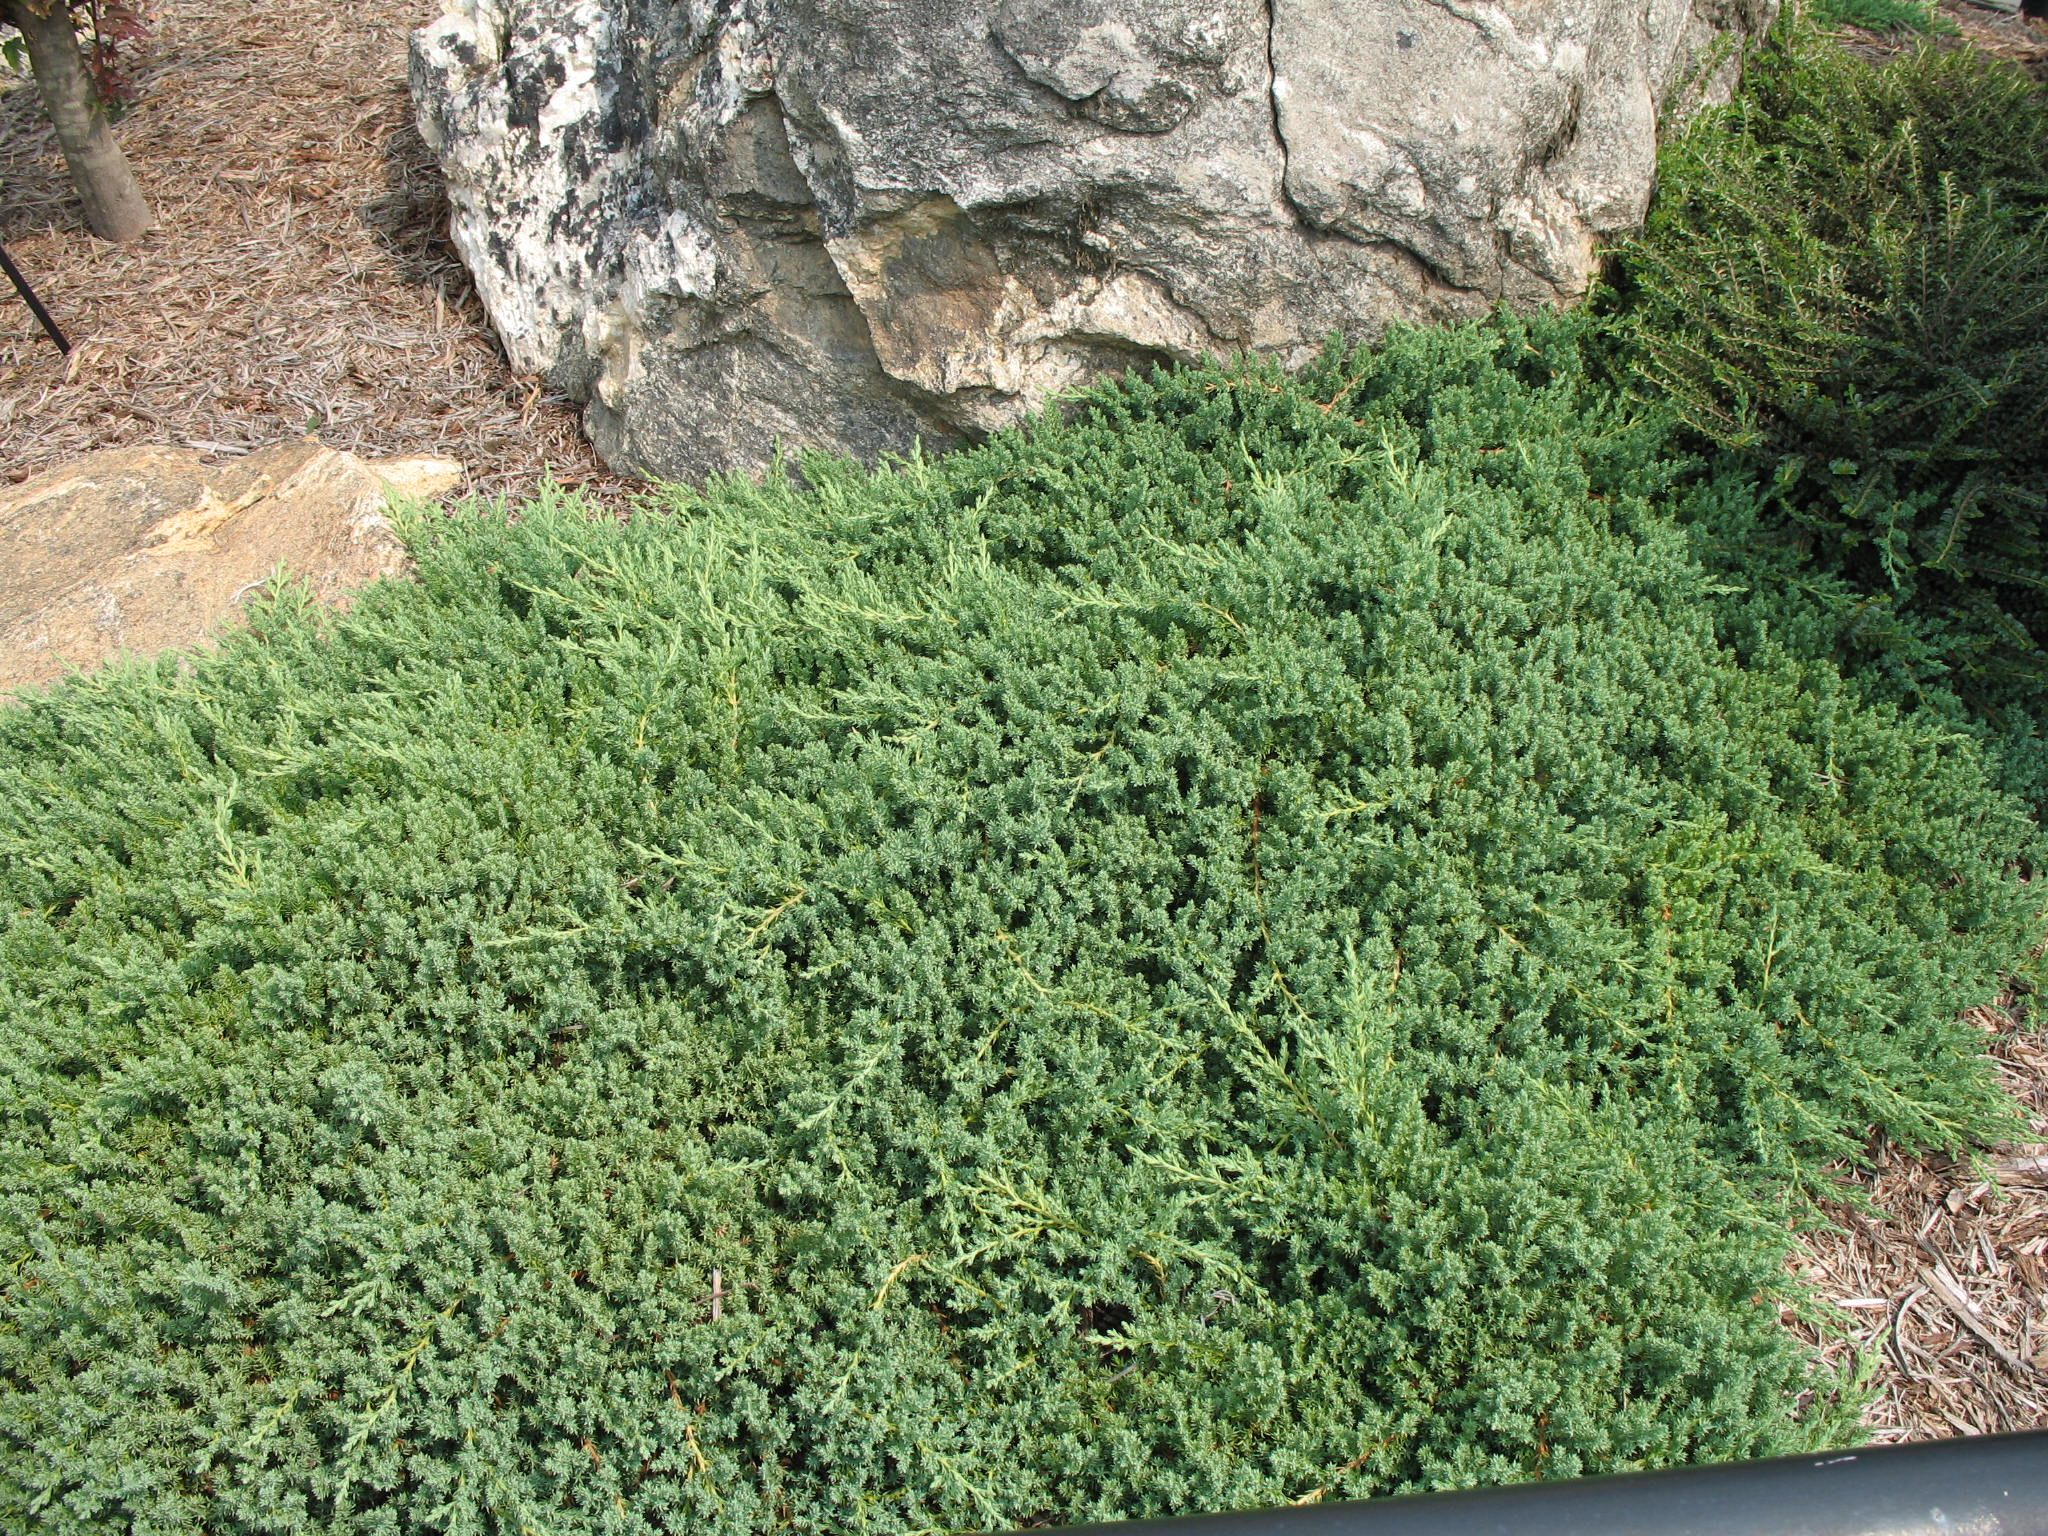 Low Ground Cover Plants Online Plant Guide Juniperus Procumbens Nana Dwarf Japanese Conifer Plants Ground Cover Plants Plants